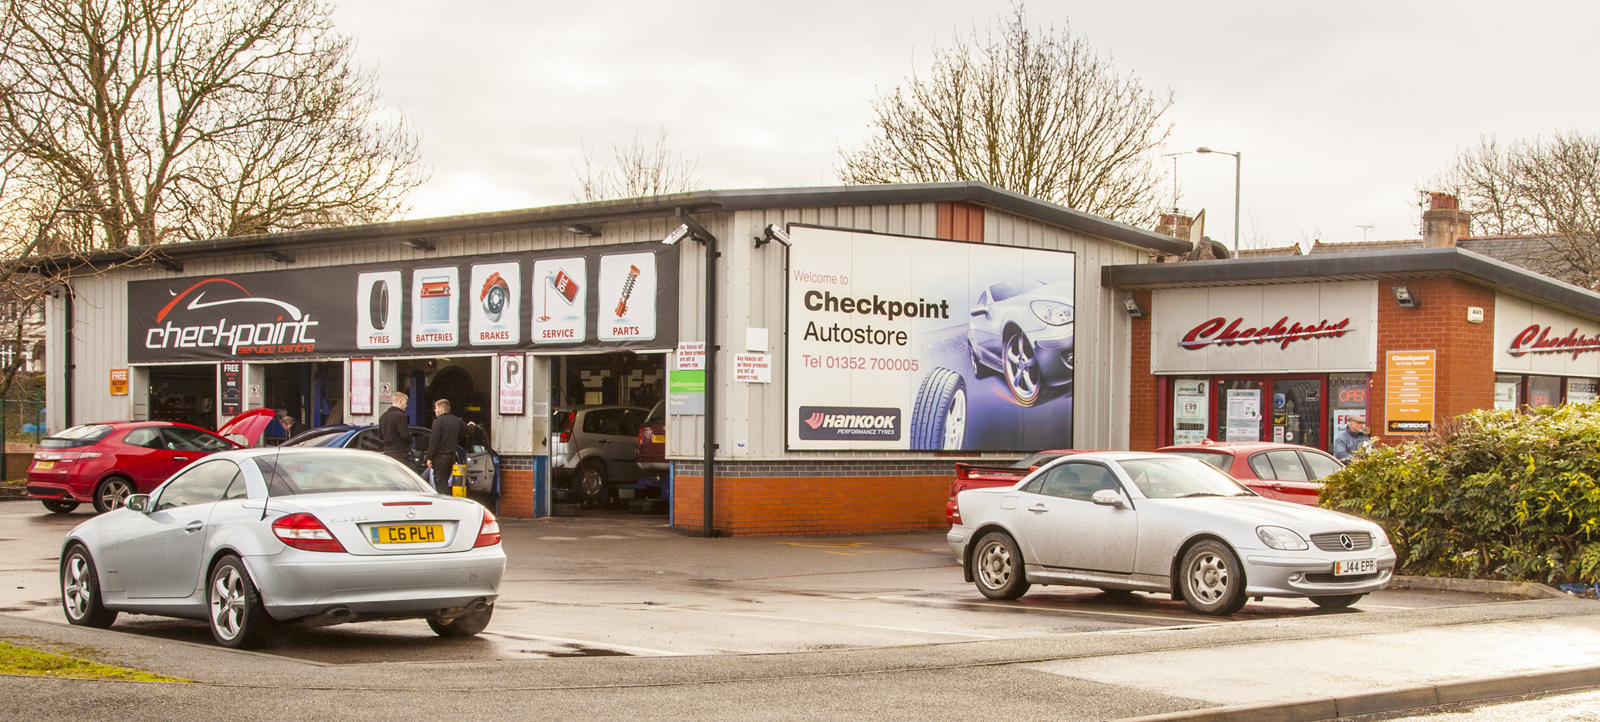 Checkpoint Auto parts & servicing in Mold